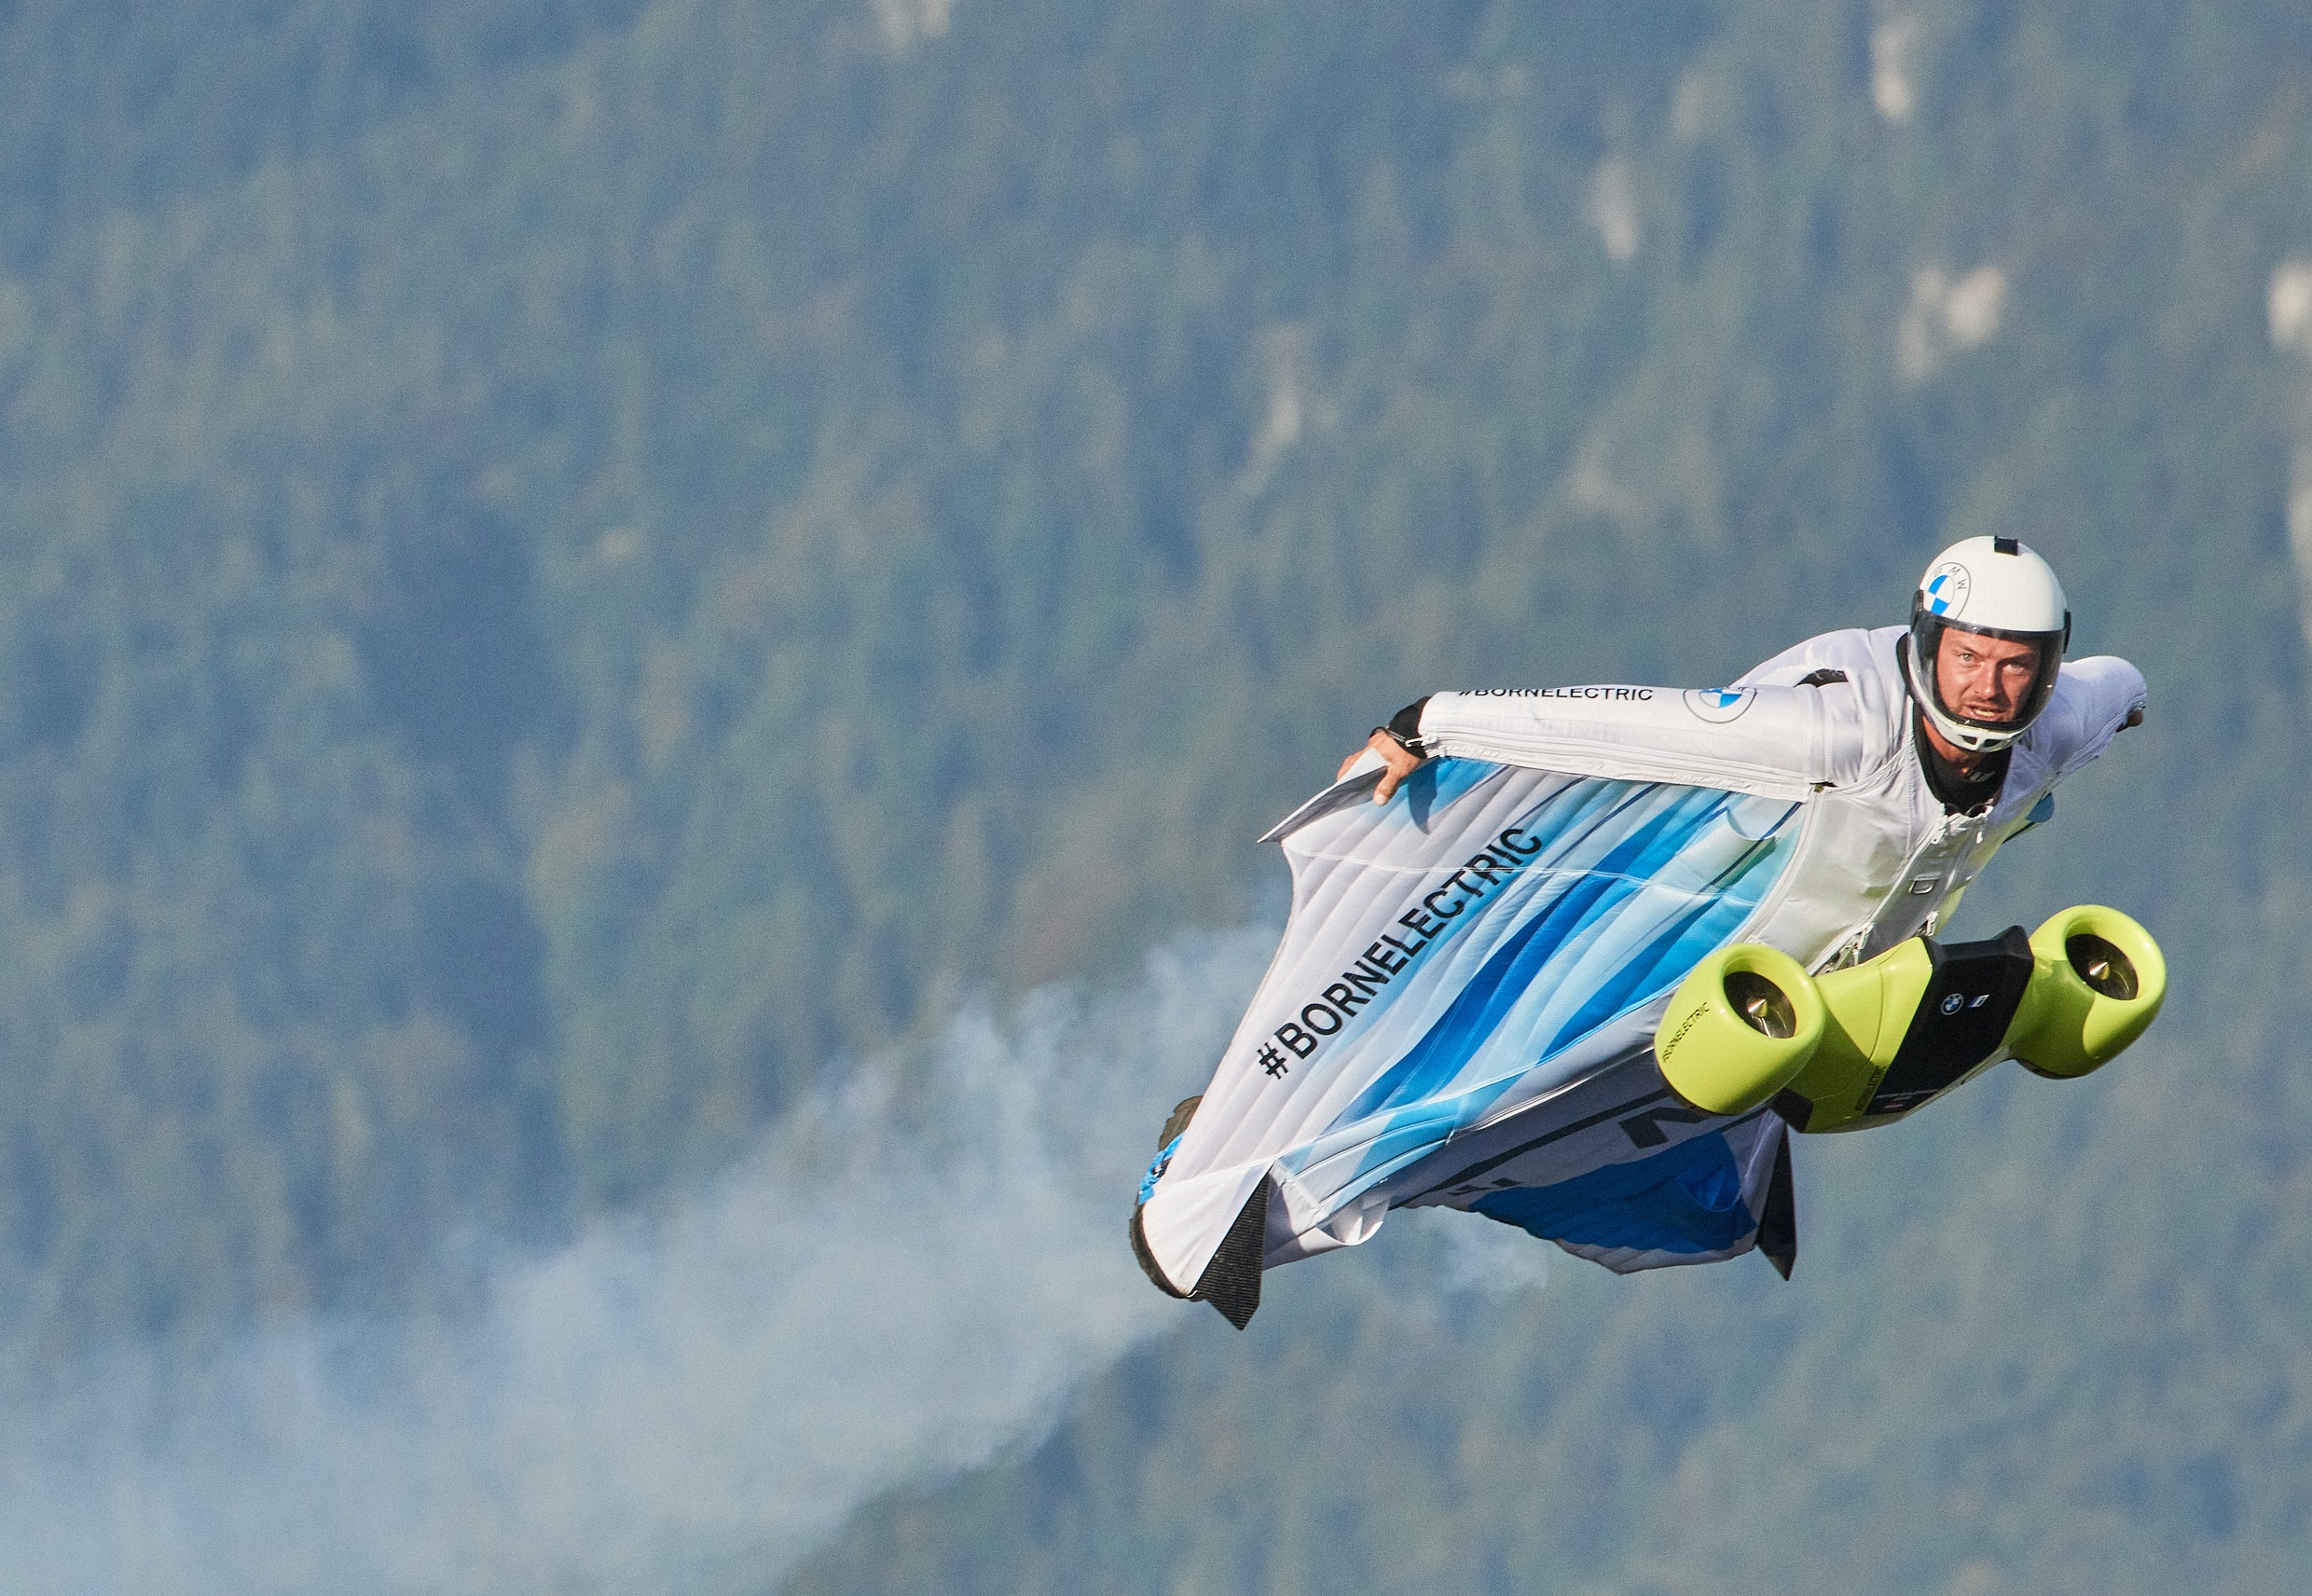 The first electrified wingsuit flight, powered by BMW i